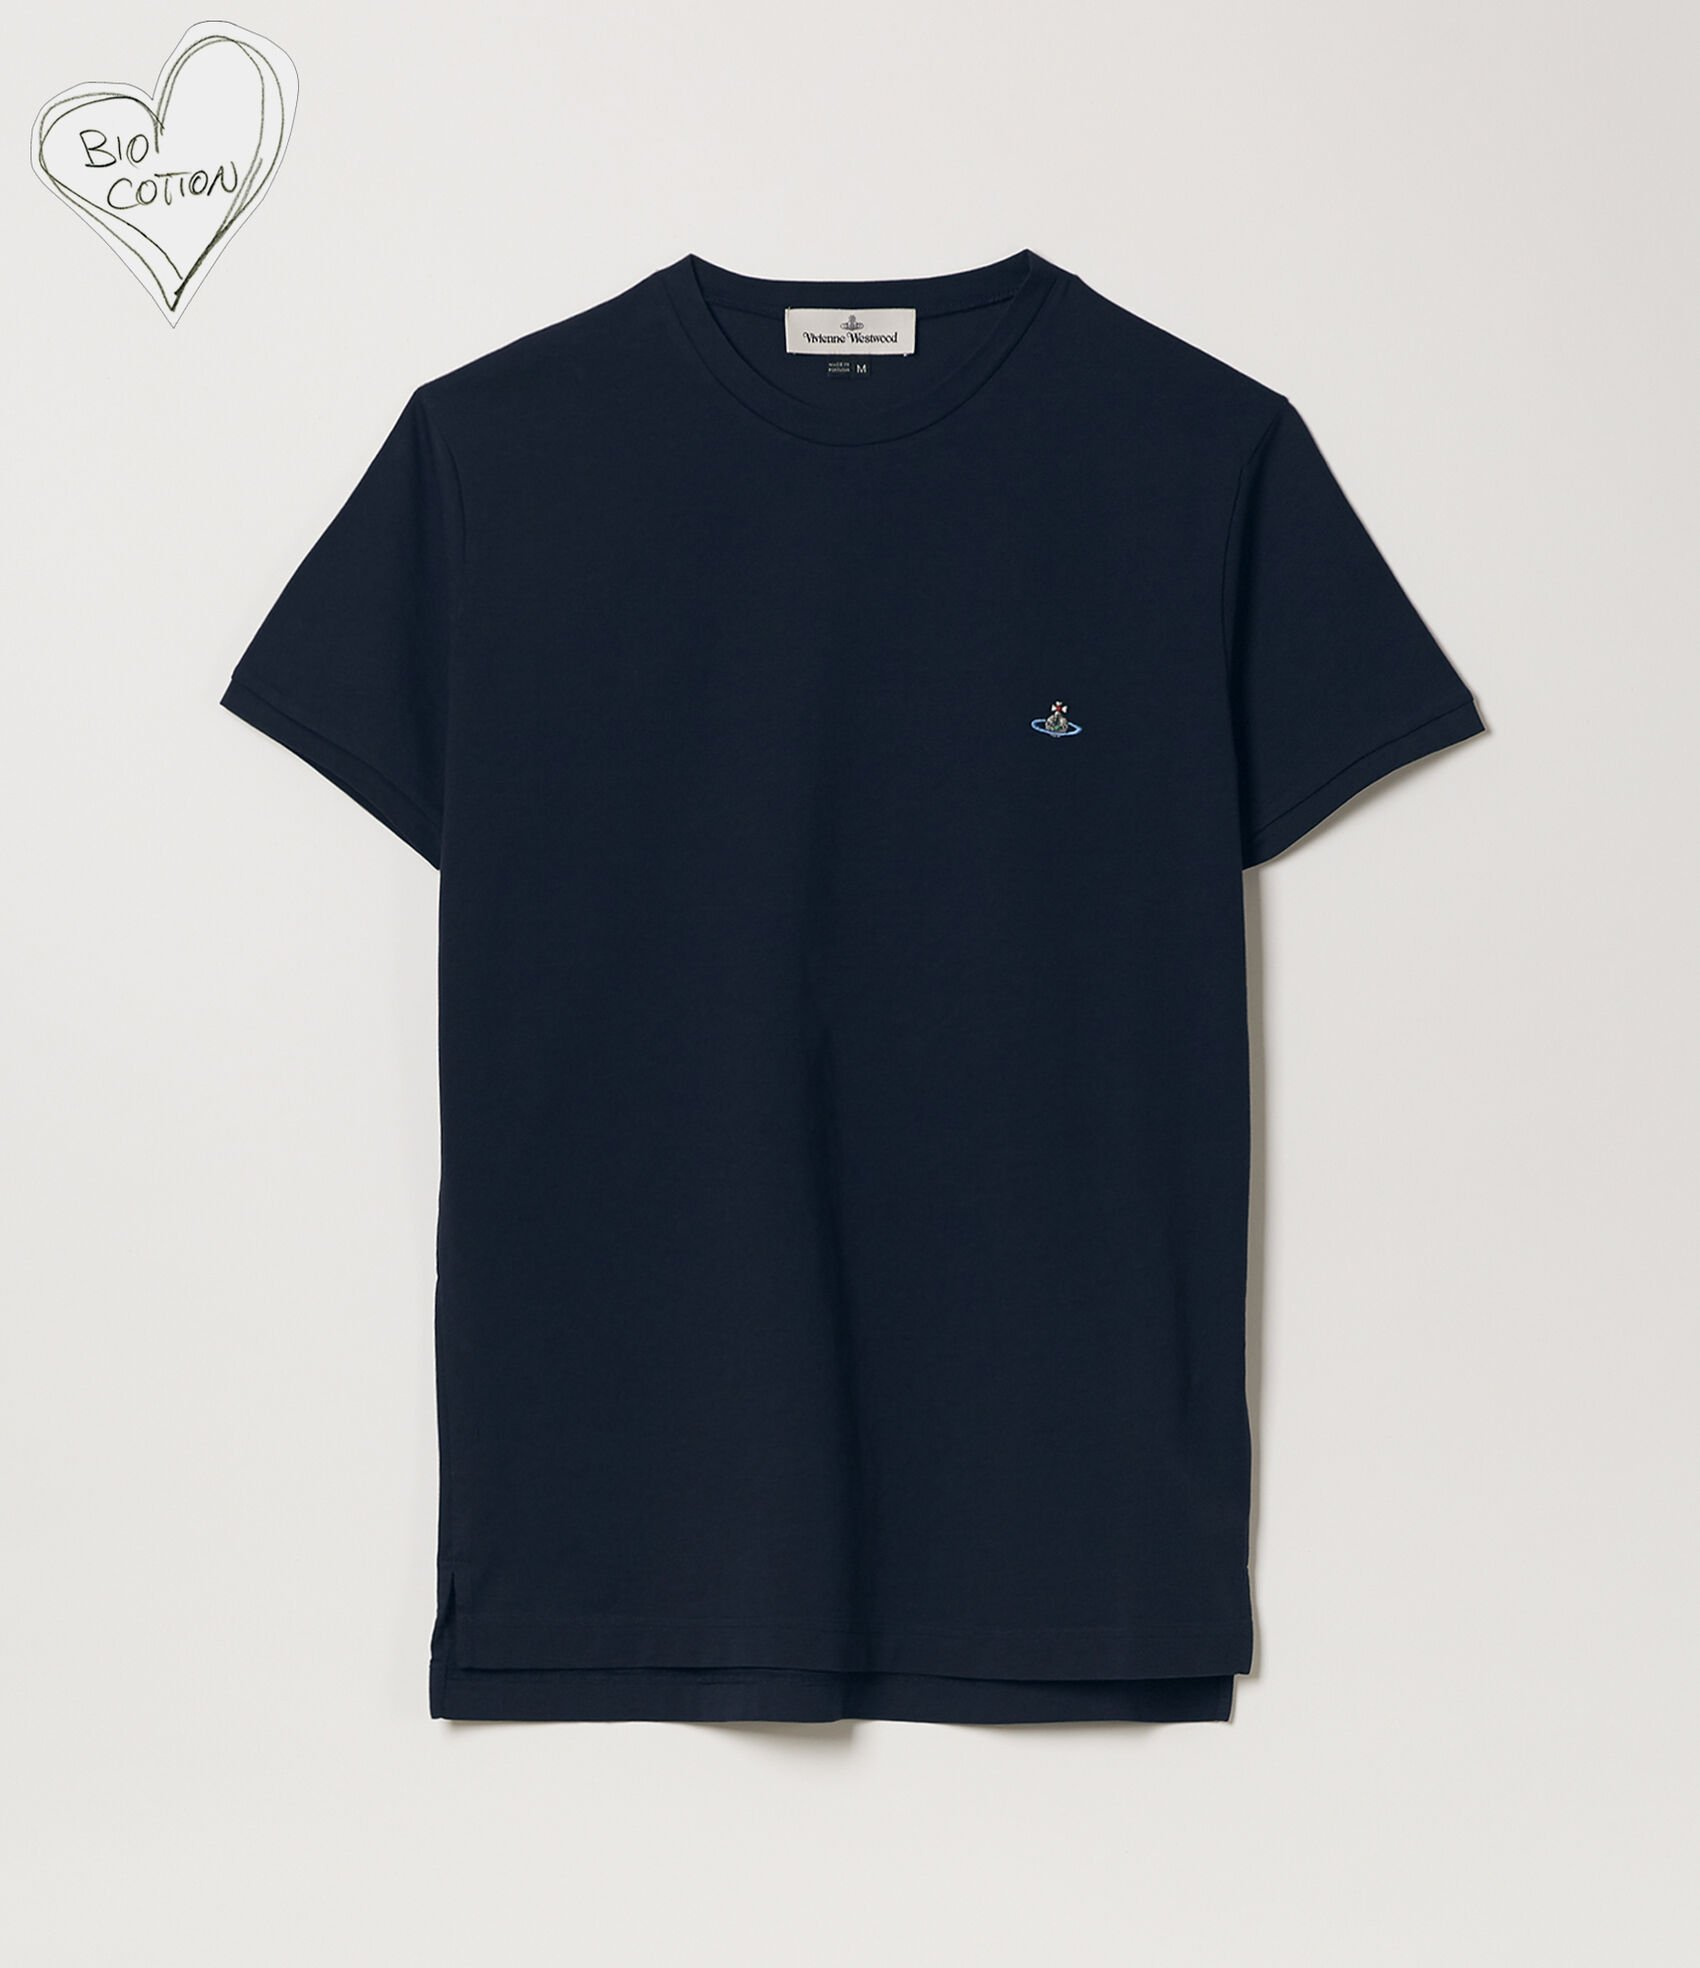 7ec4335963 Vivienne Westwood Designer T-Shirts and Polos | Men's Clothing ...